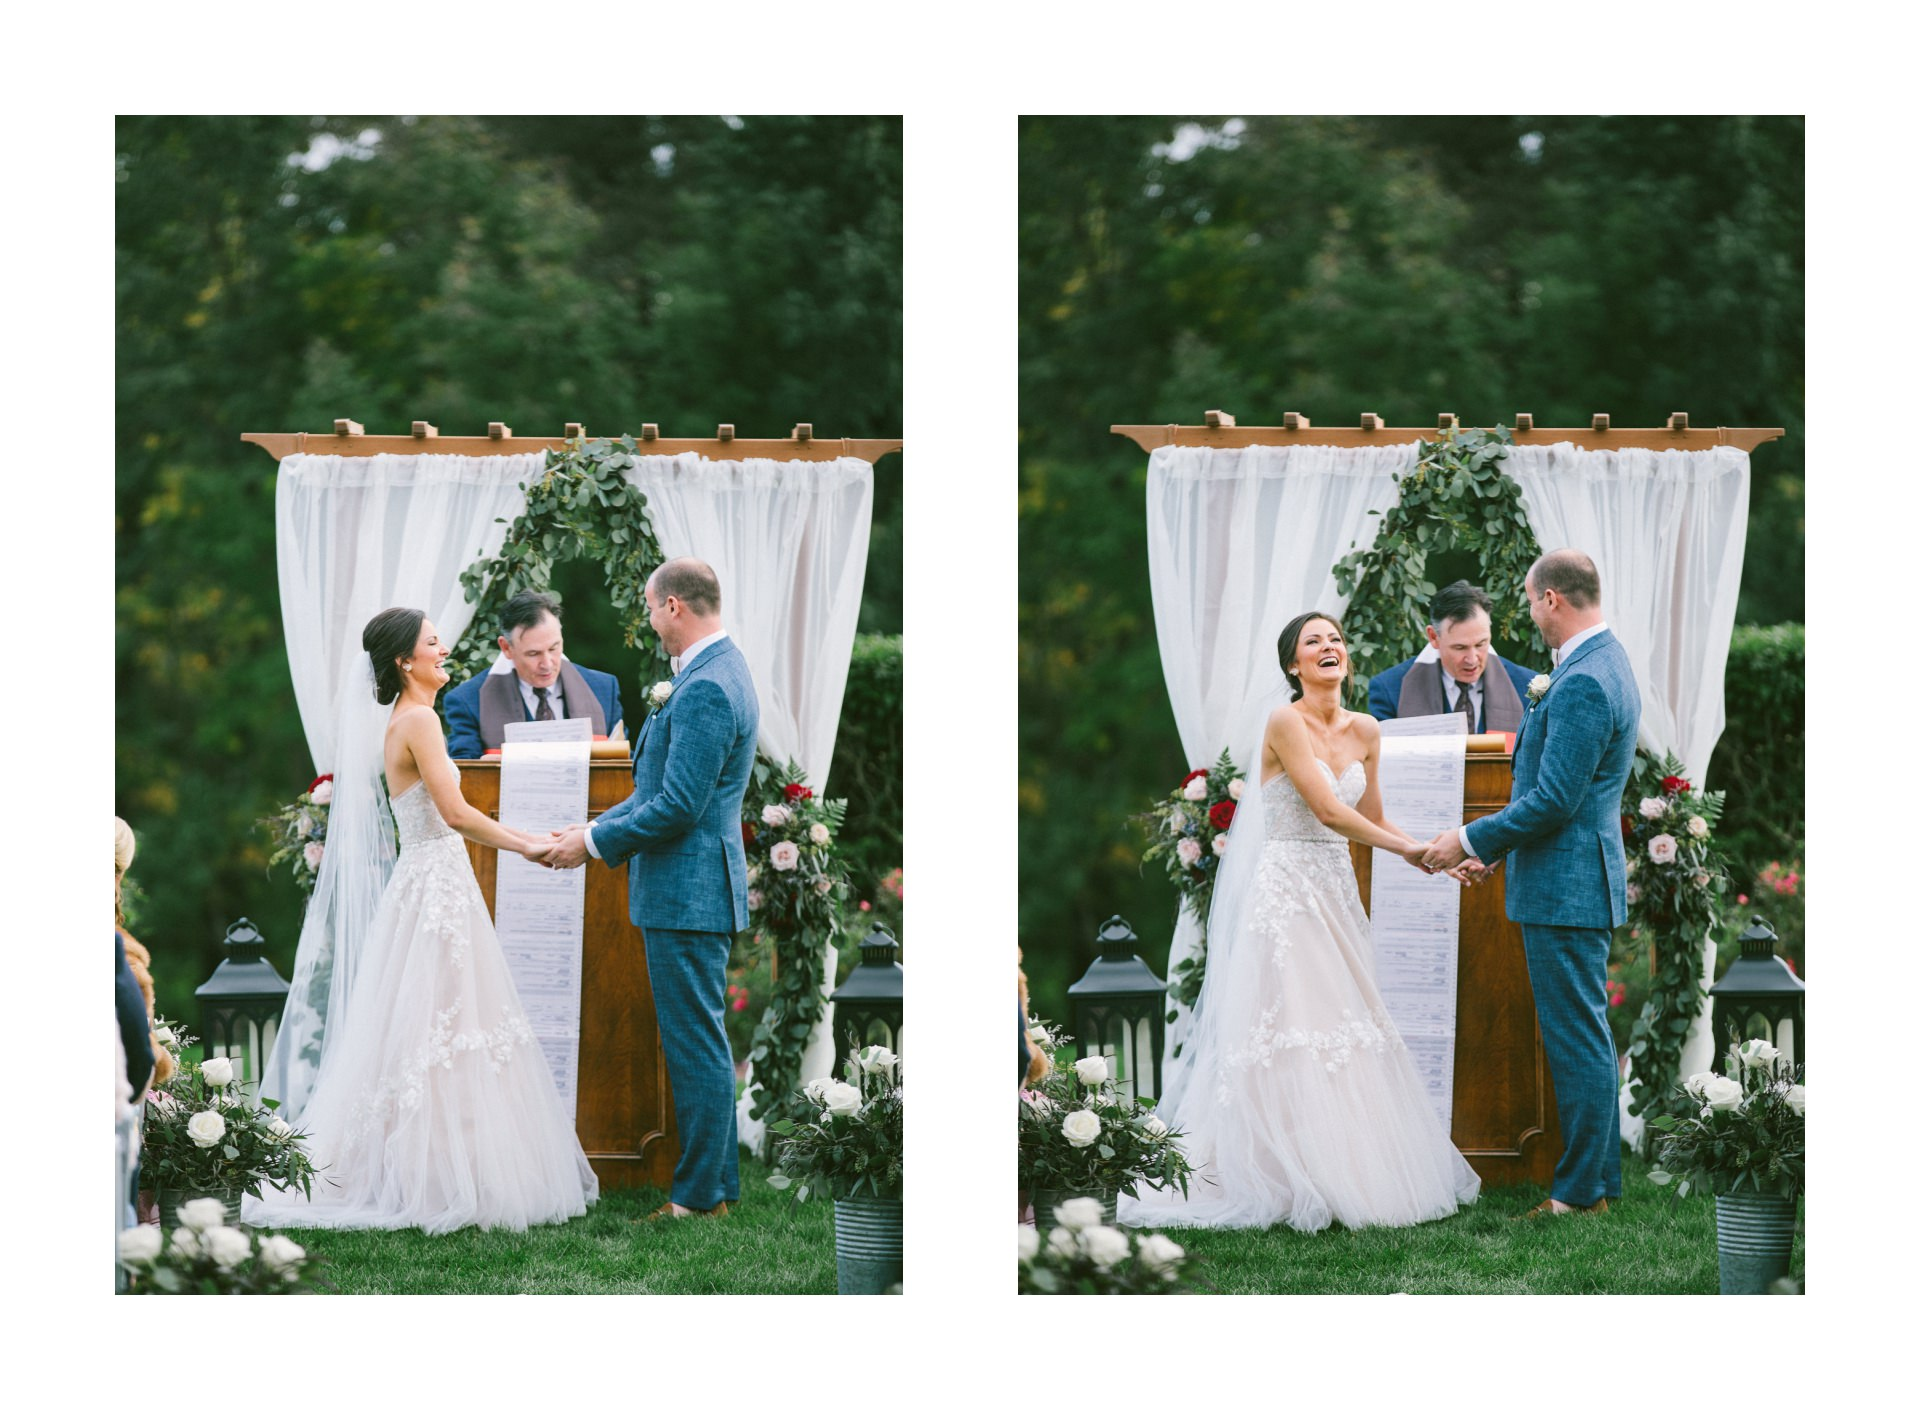 Wedding at Kirtland Country Club in Willoughby 3 6.jpg